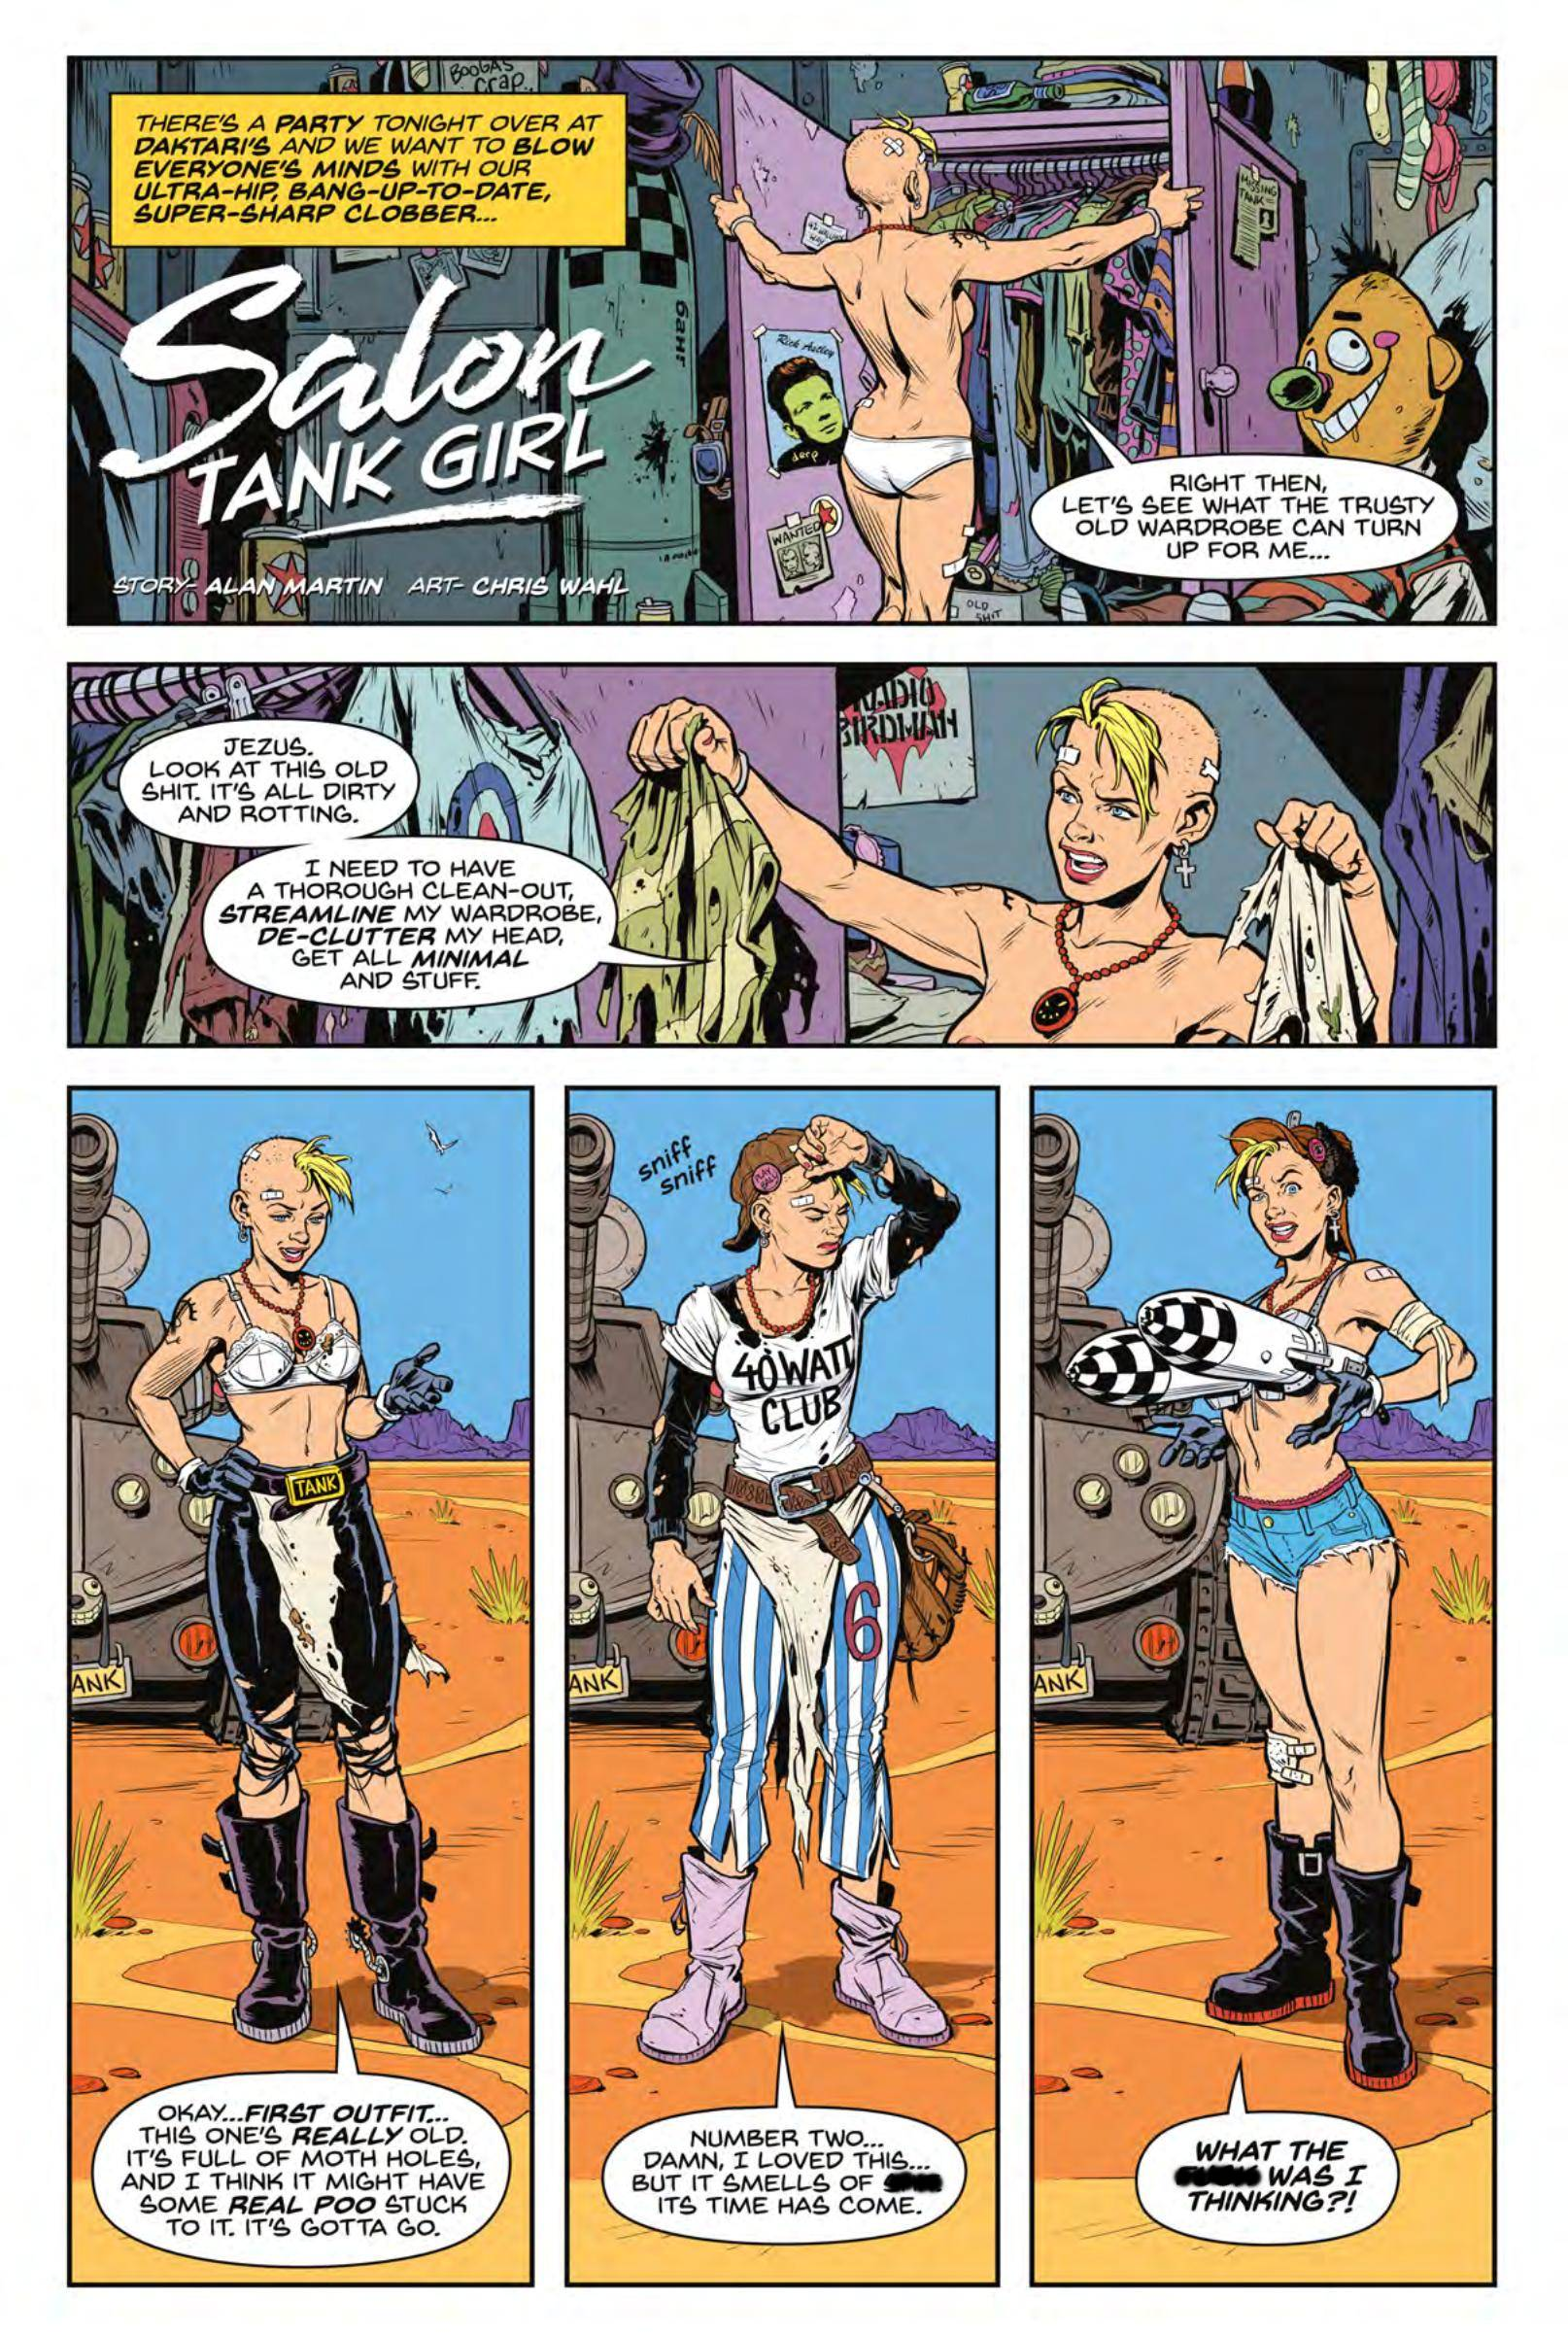 Tank Girl All-Stars review